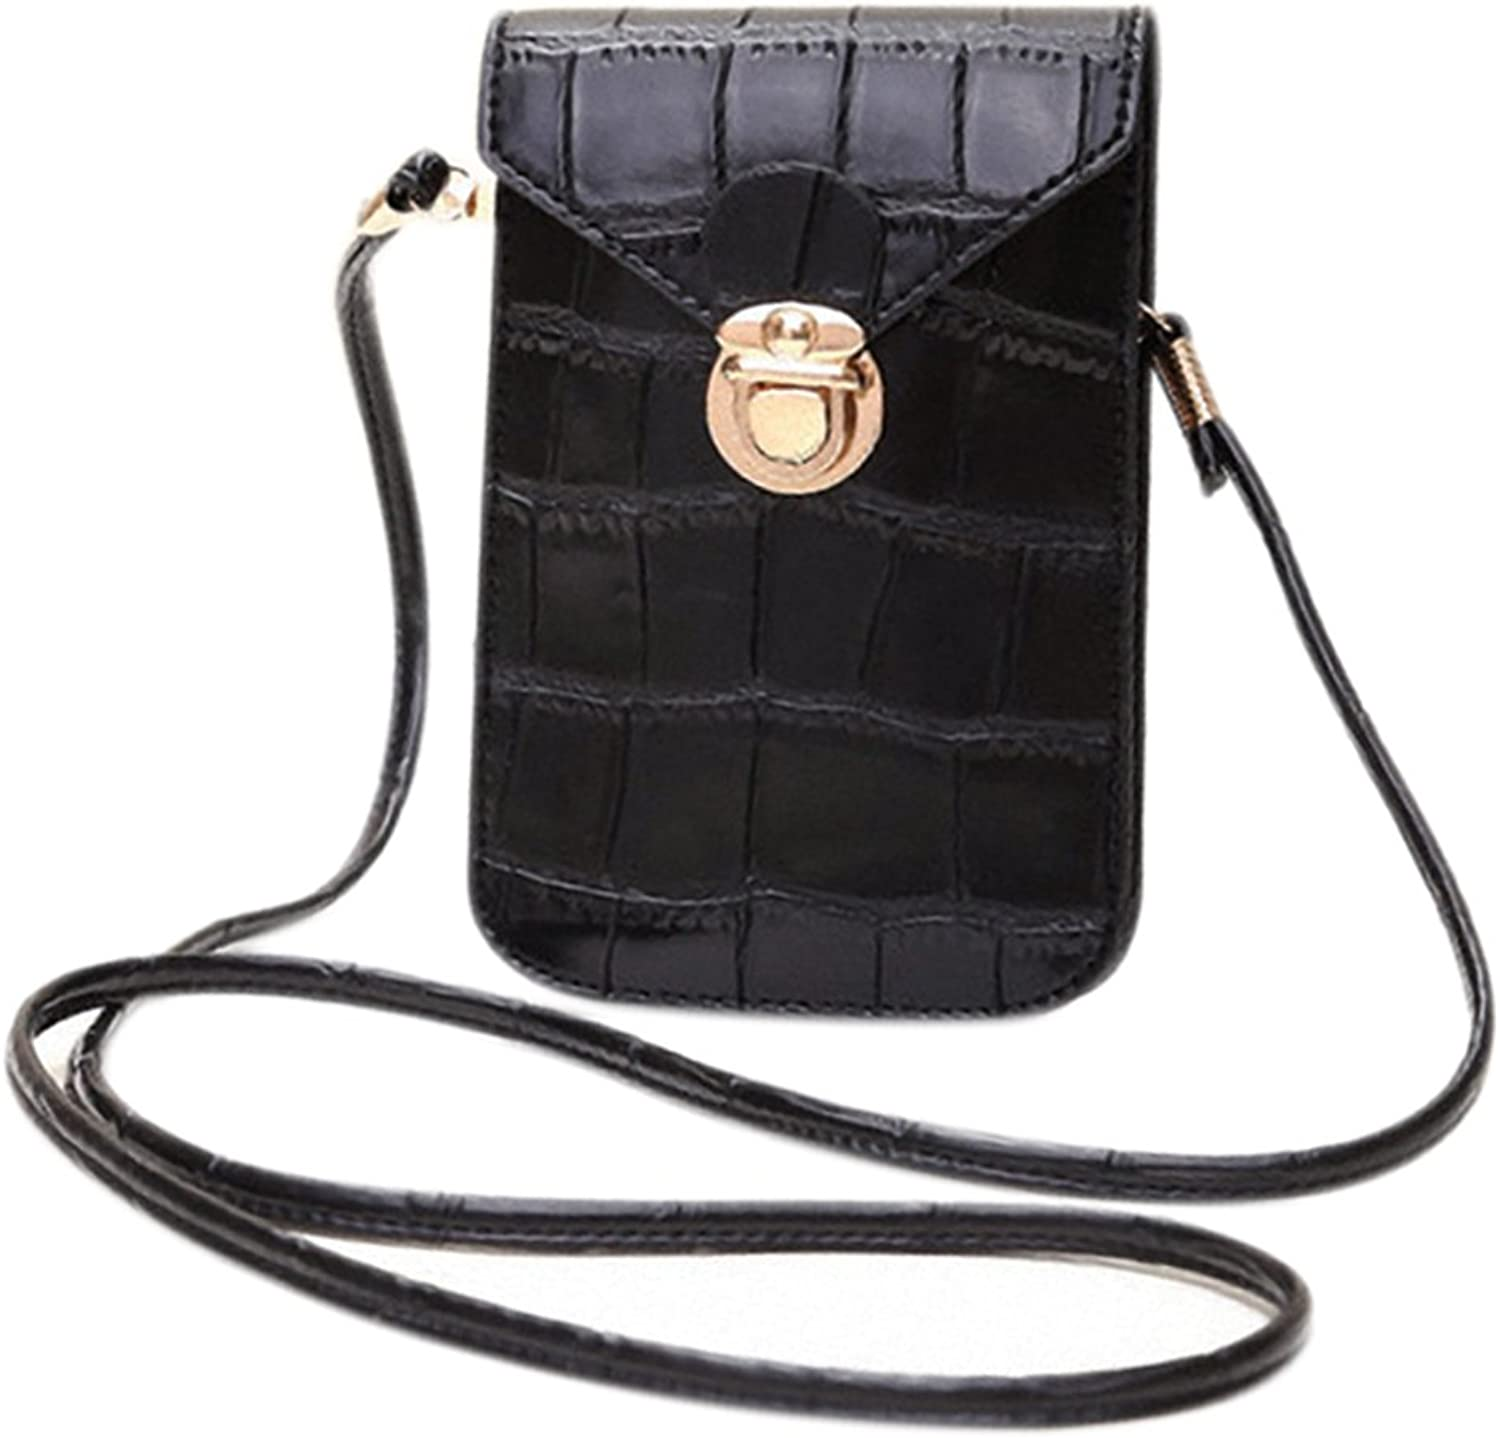 CCUS Waterproof Crossbody Shoulder Bag, Coin Purse Cell Phone Pouch with Removable Strap